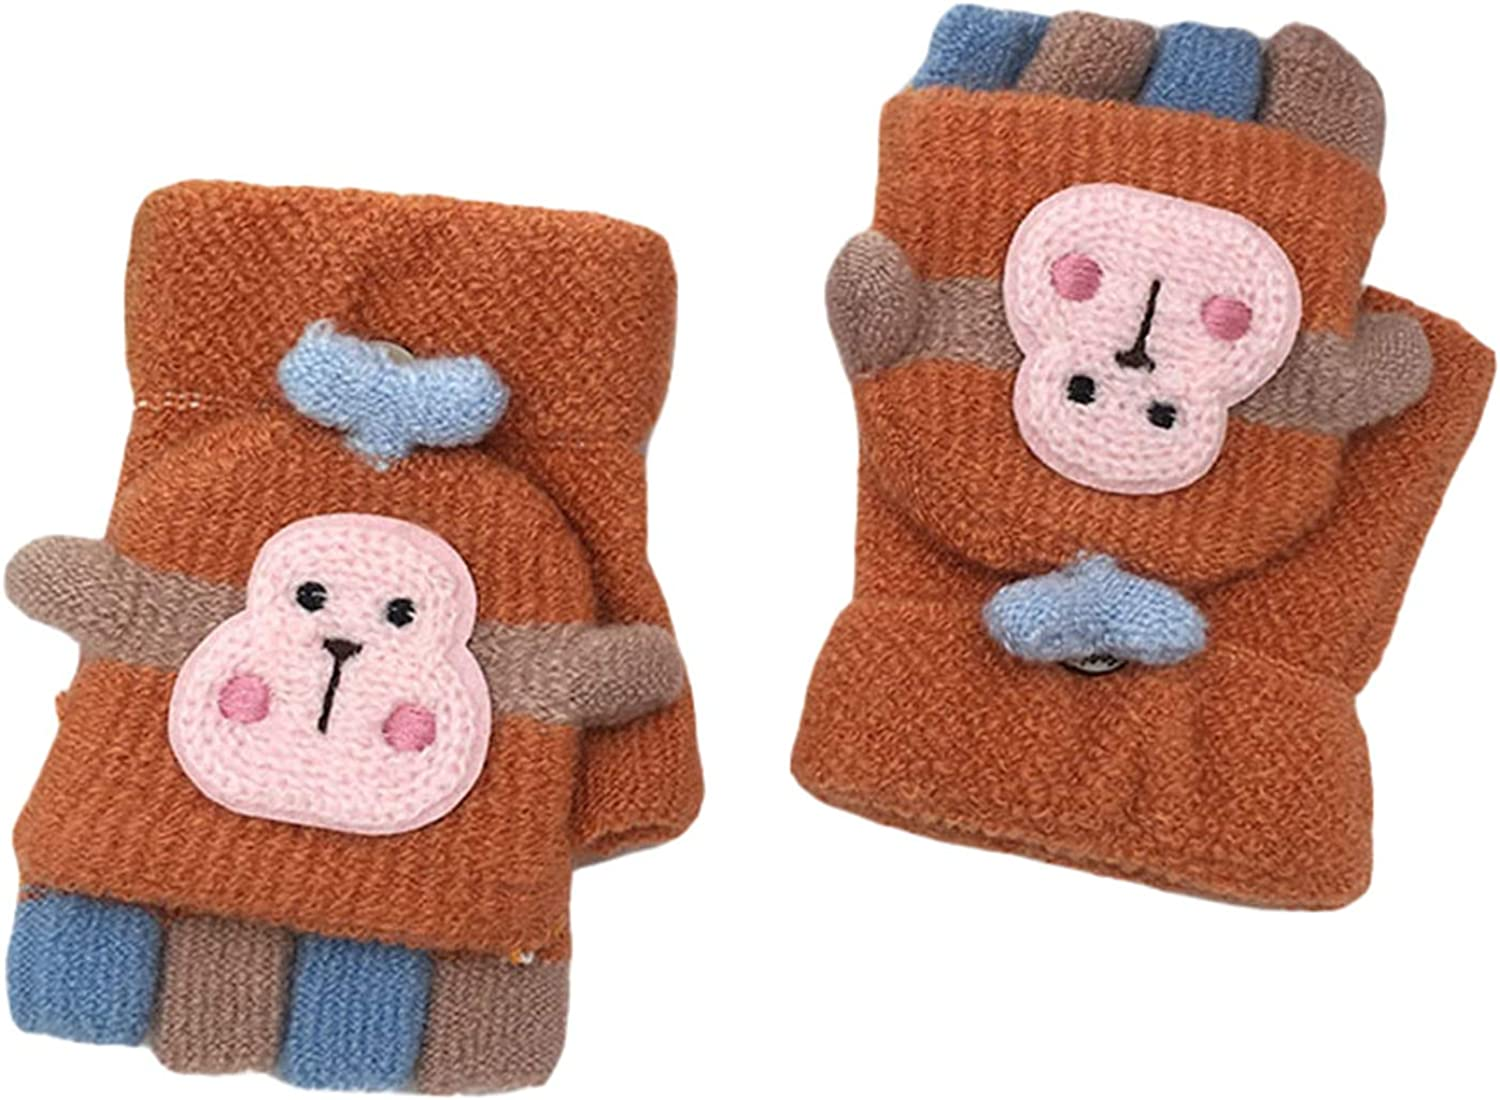 Girls Convertible Mittens, Monkey Knitted Thermal Chunky Kids Cold Weather Gloves for Holiday